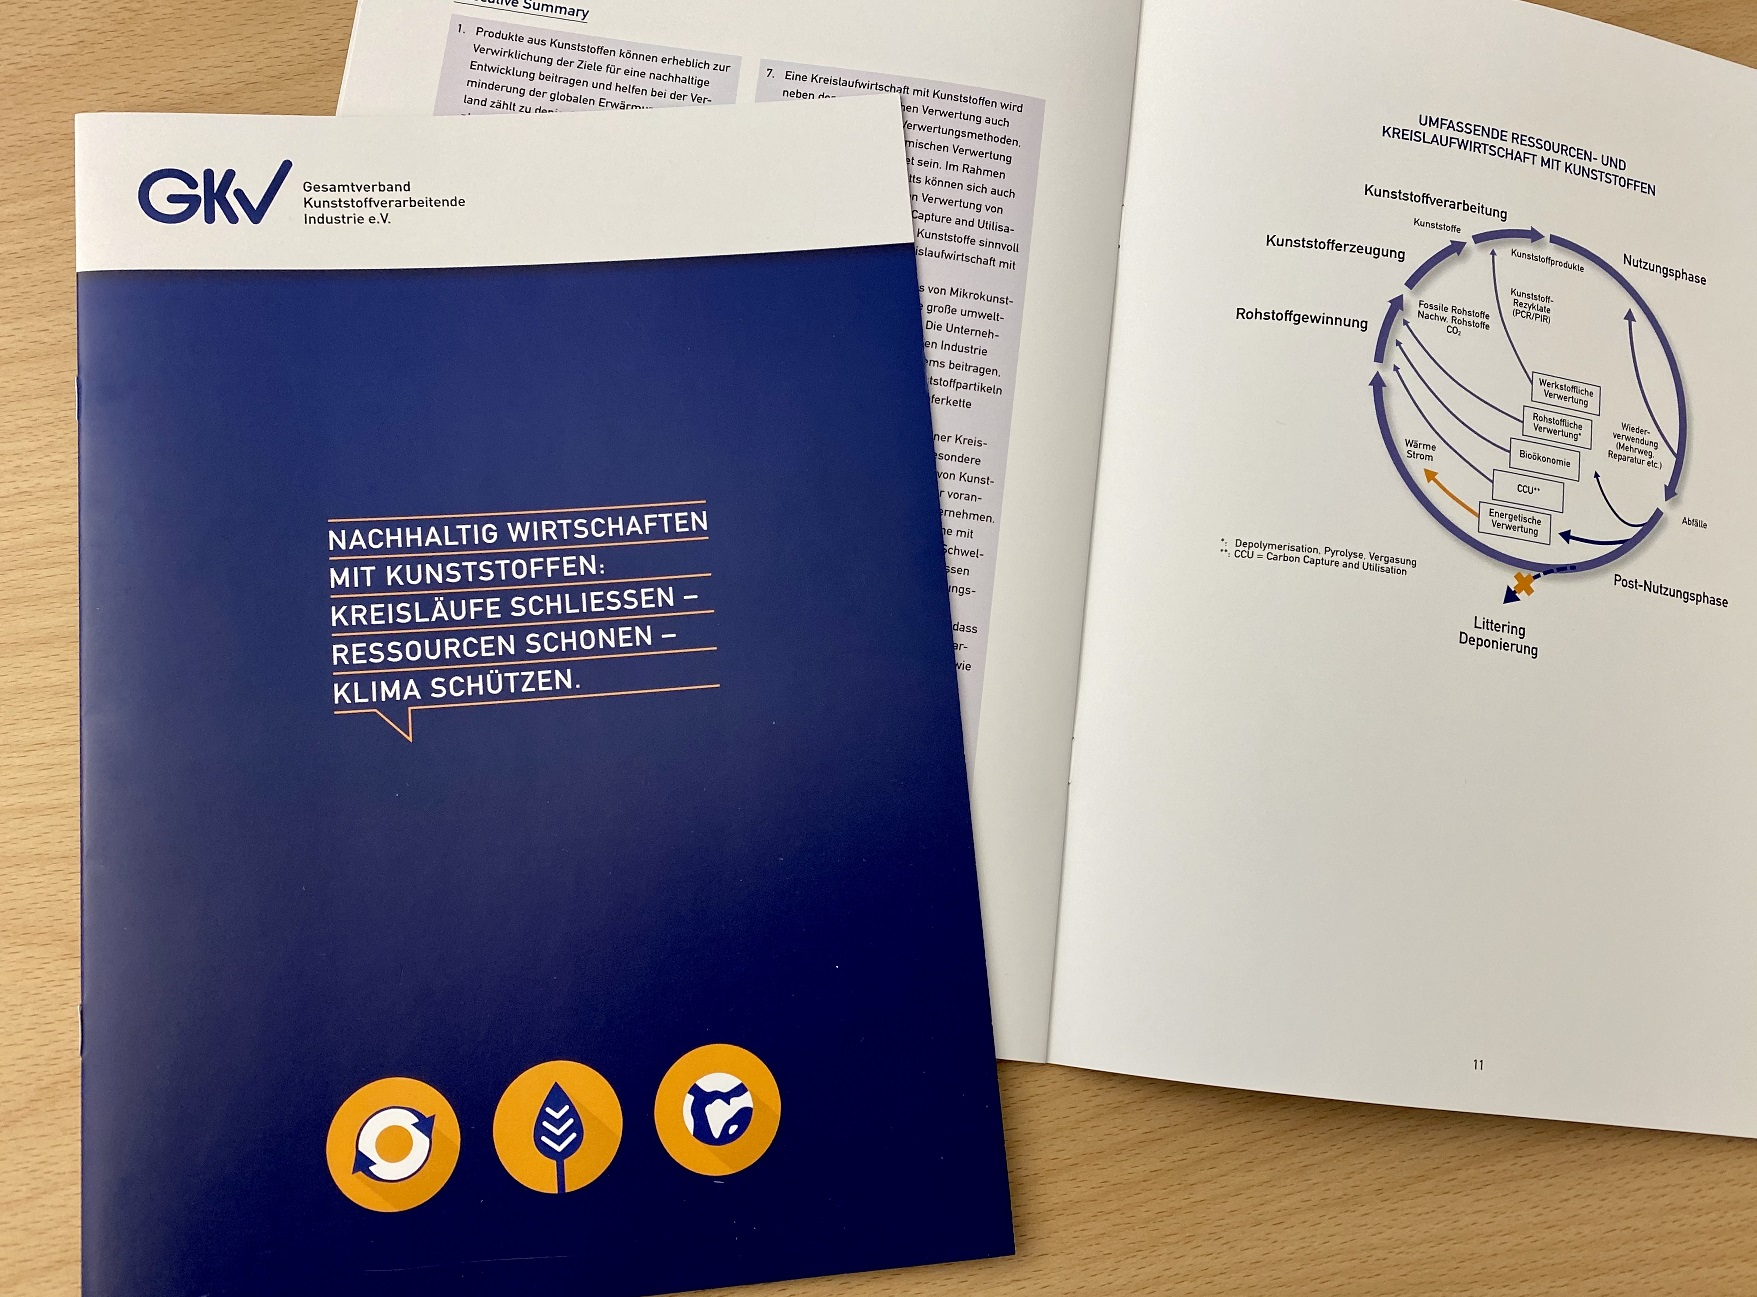 GKV: Position paper on the circular economy